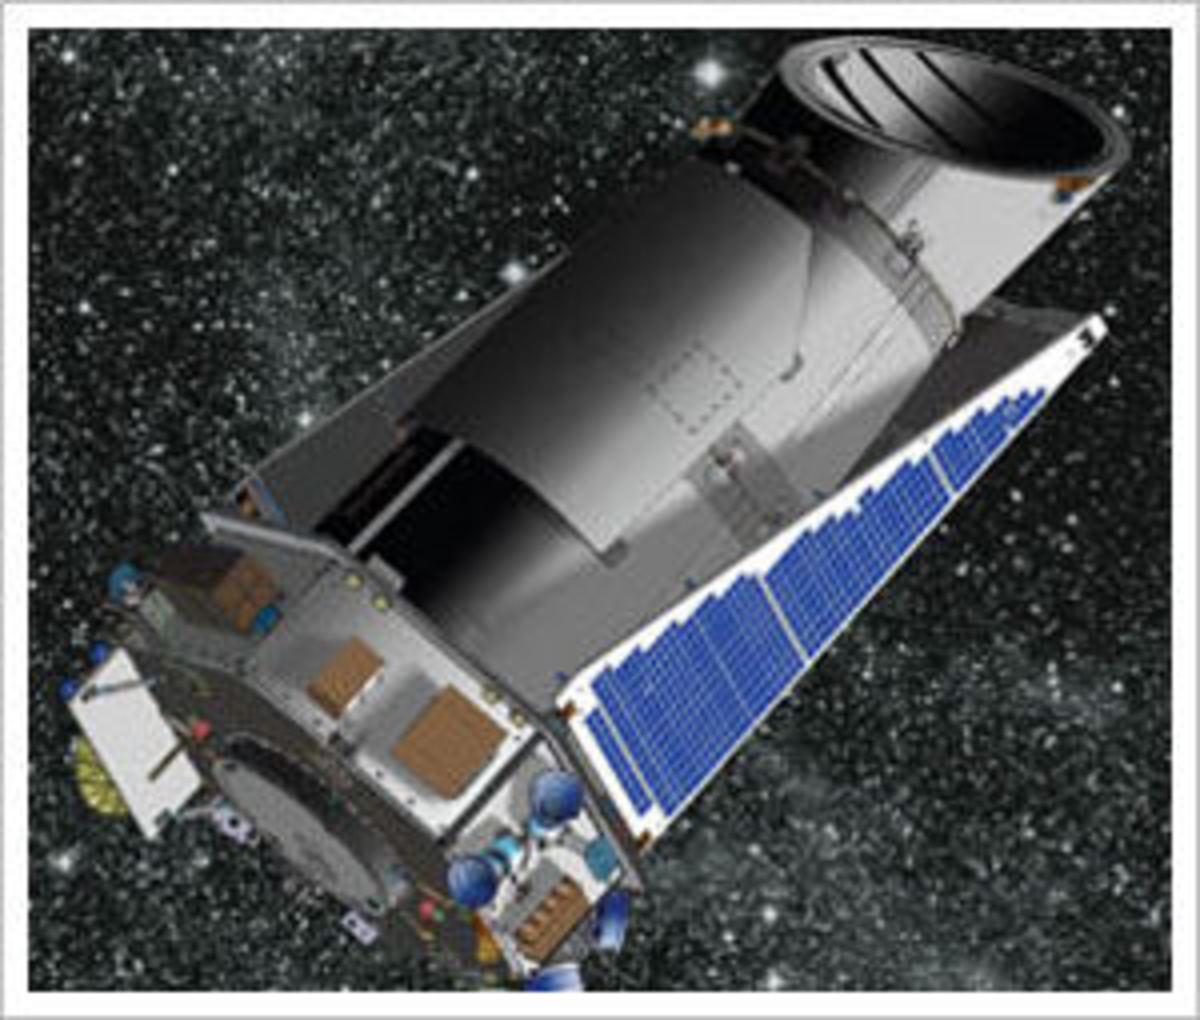 Kepler's Space Telescope will replace Hubble Space telescope